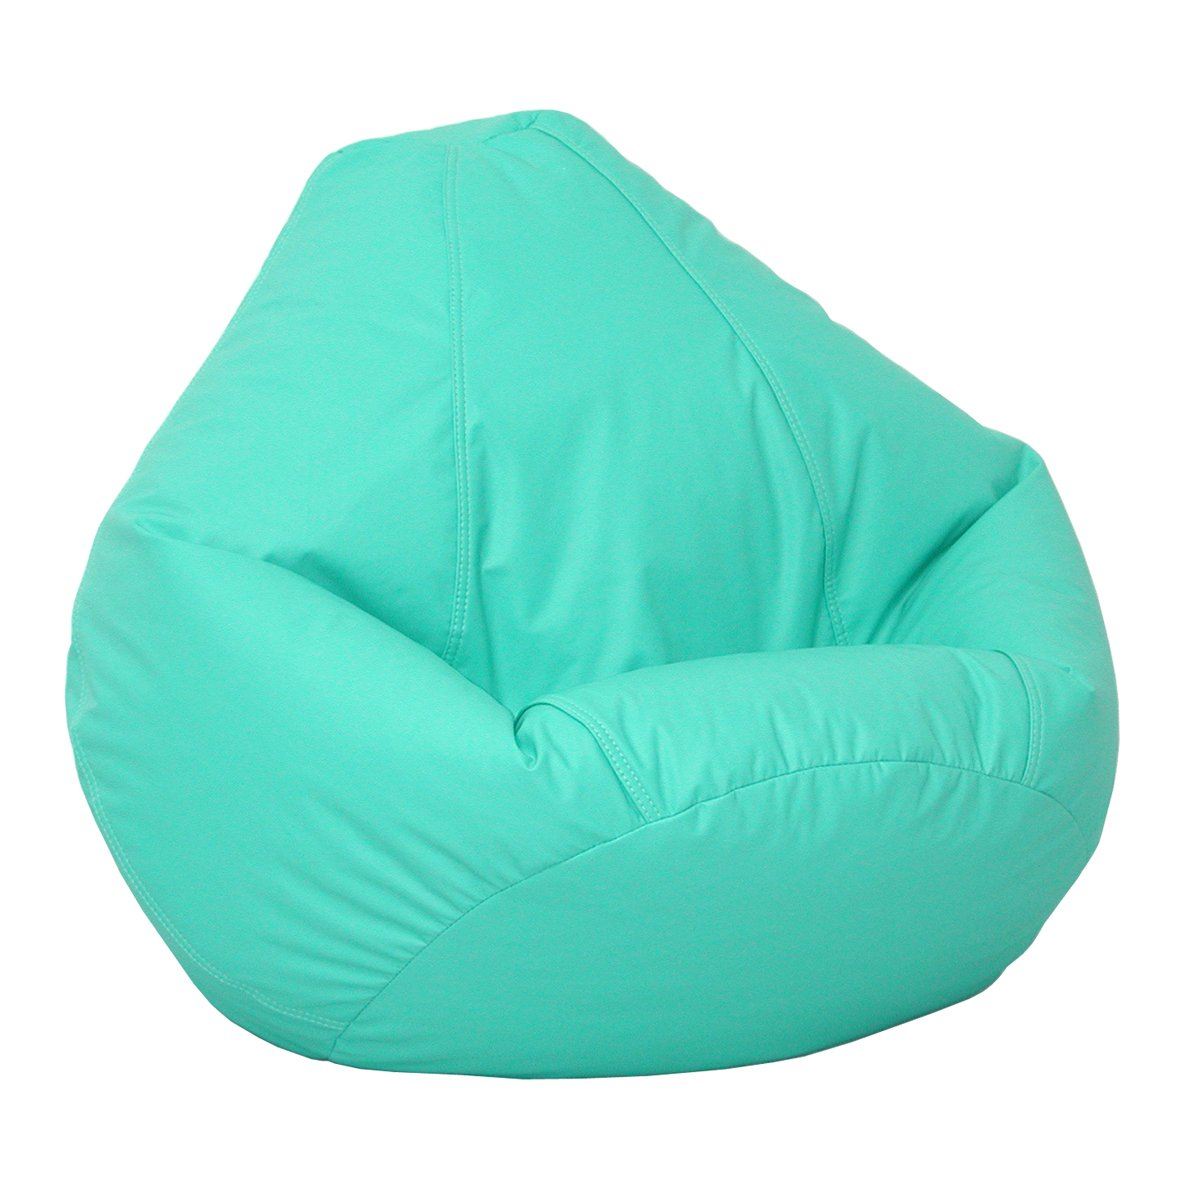 Buy Lifestyle Bean Bag Large Aqua Online At Low Prices In India